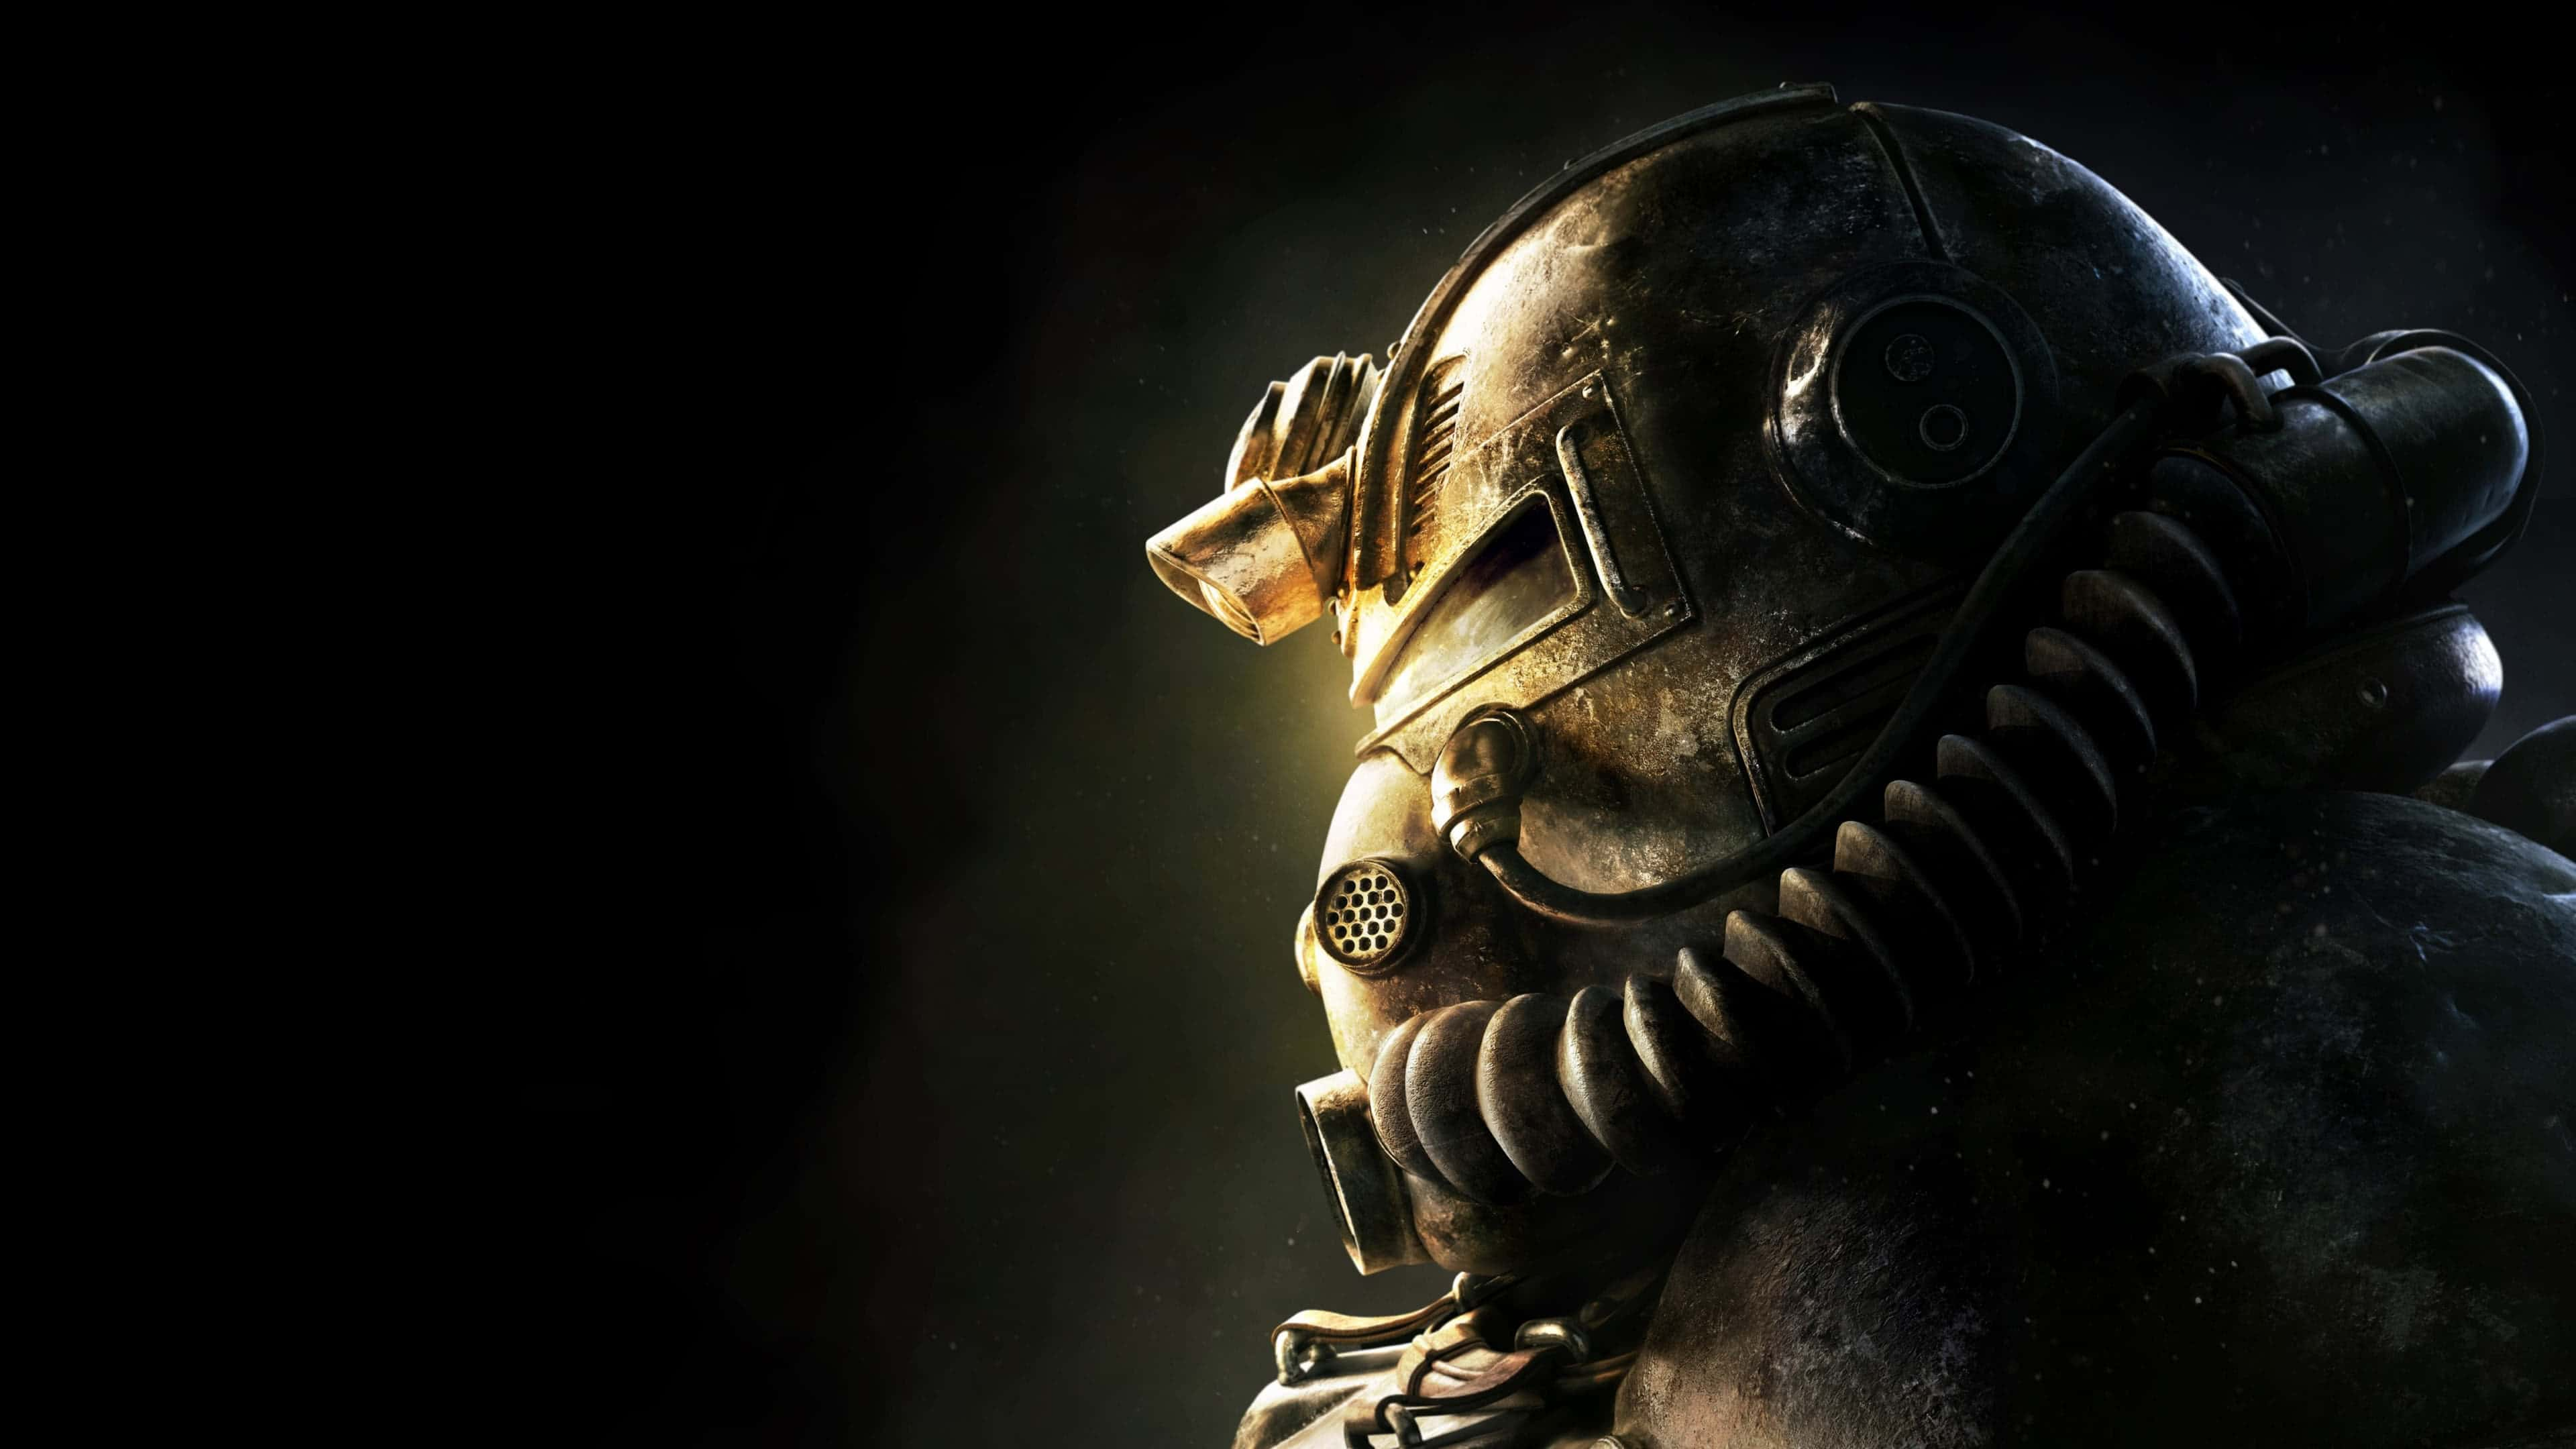 Fallout 76 Power Armor Uhd 4k Wallpaper